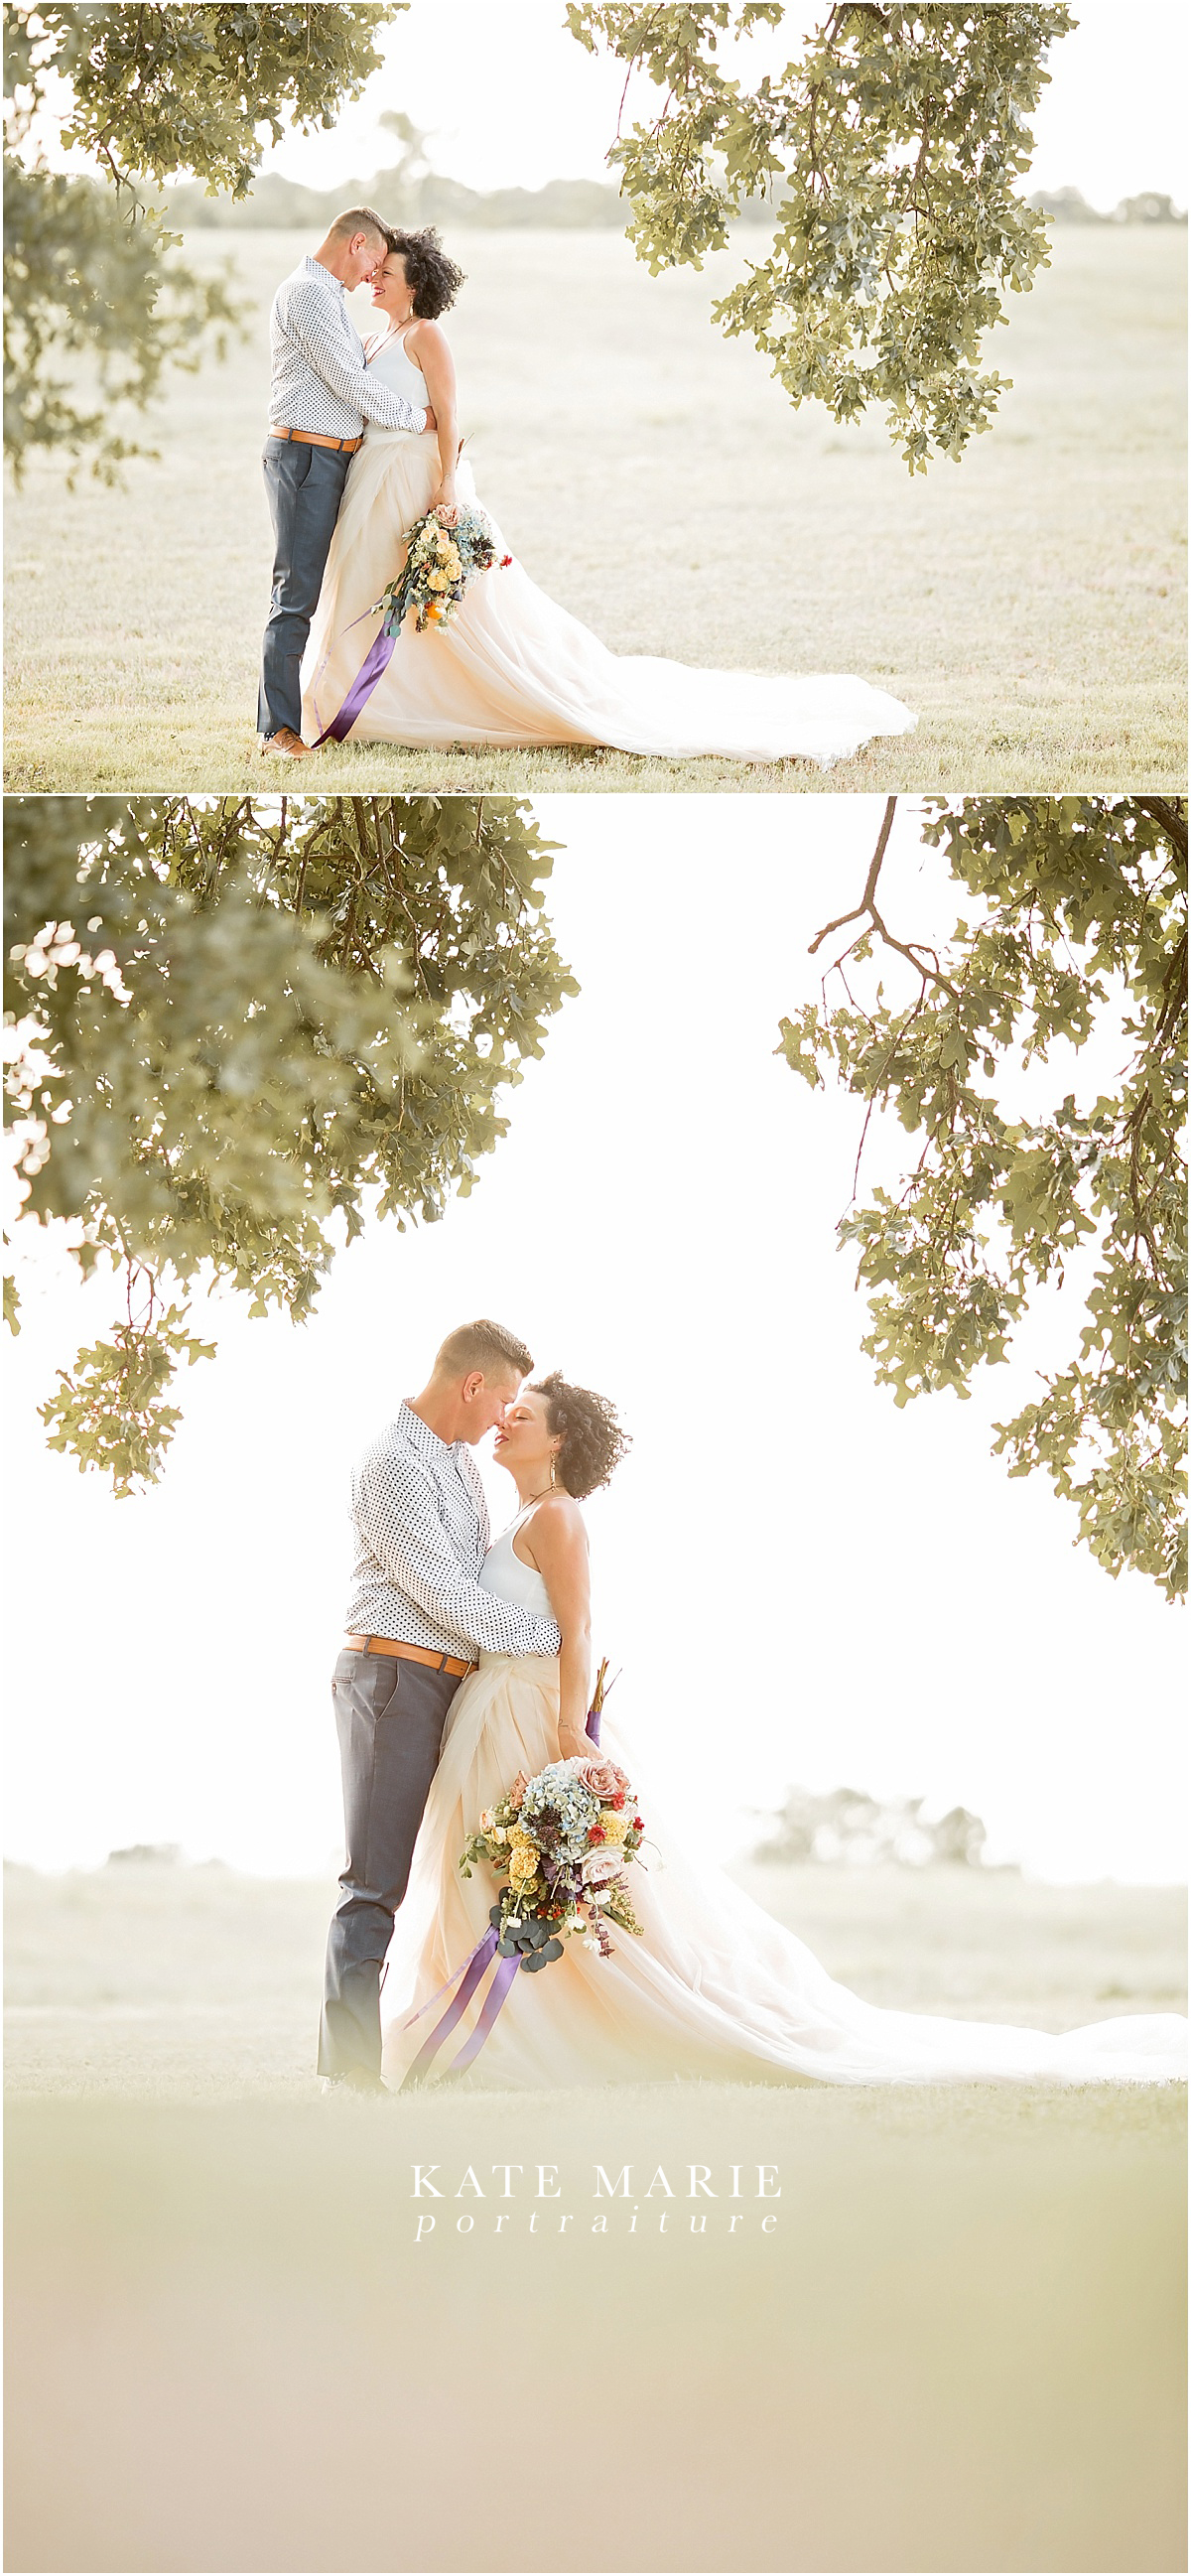 Dallas_Wedding_Photographer_Flower_Mound_Portrait_Photographer_Kate_Marie_Portraiture_4.jpg